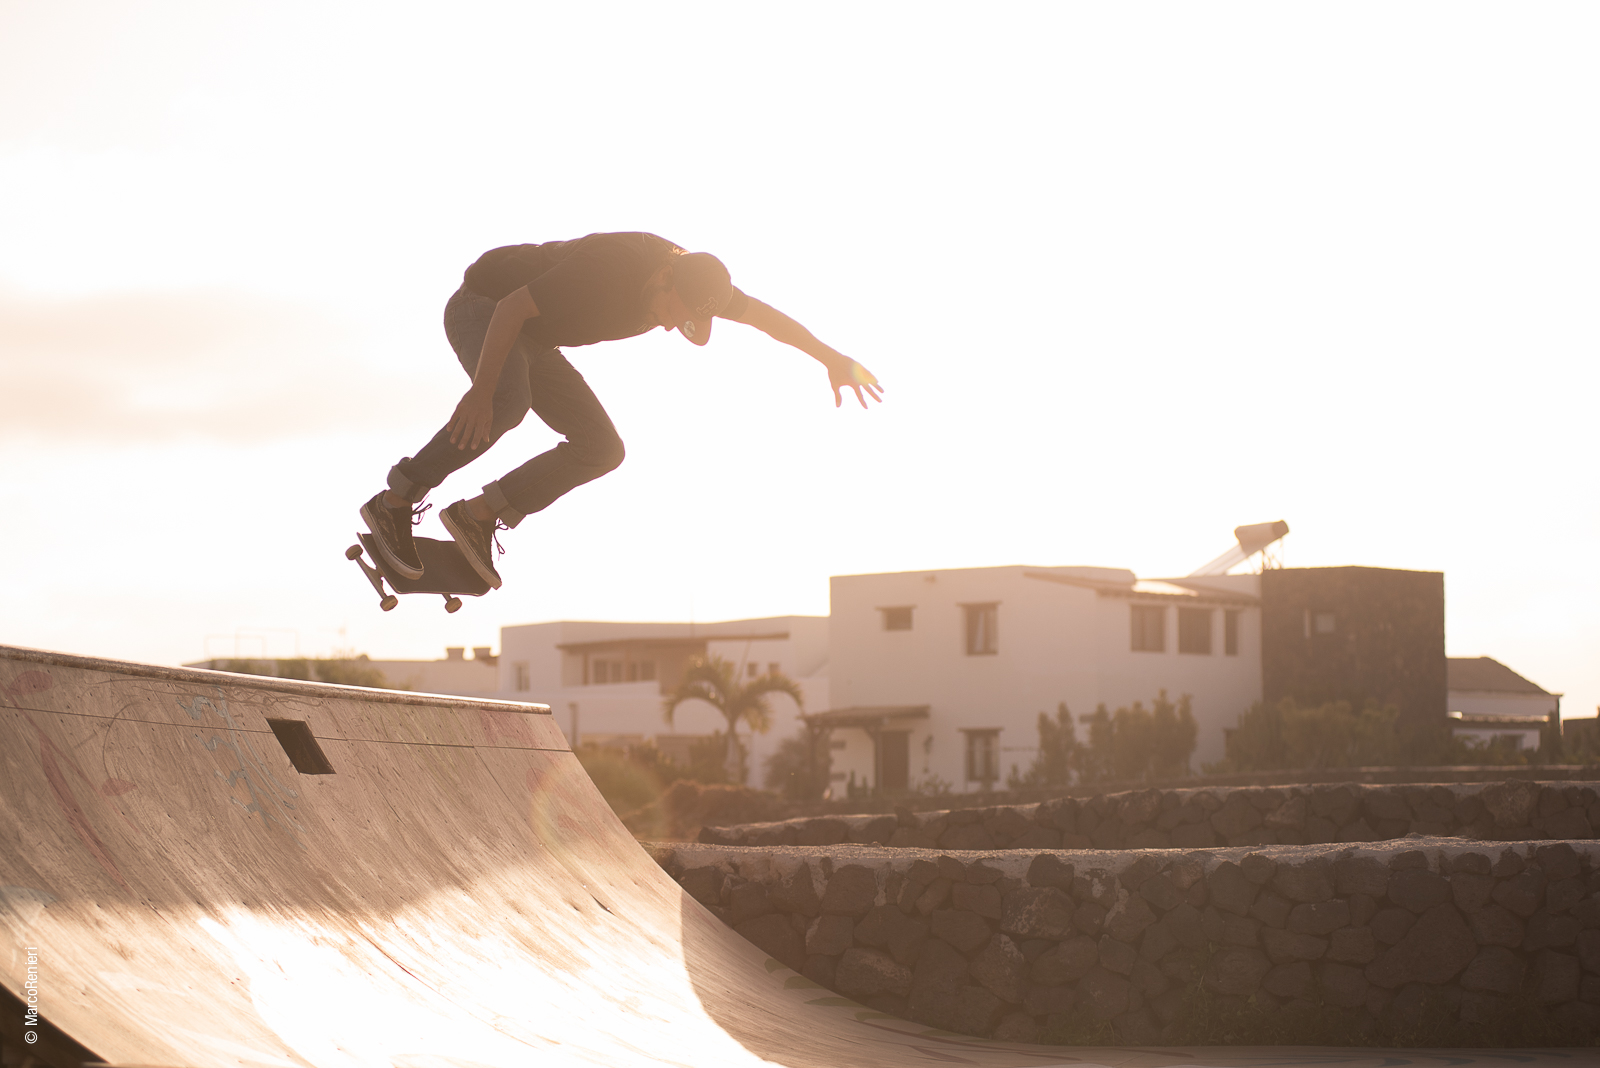 casamaccaroni_fuerteventura_surfhouse_guesthouse_surflodge_surf_fun_skateboarding_friends_ollie_photography